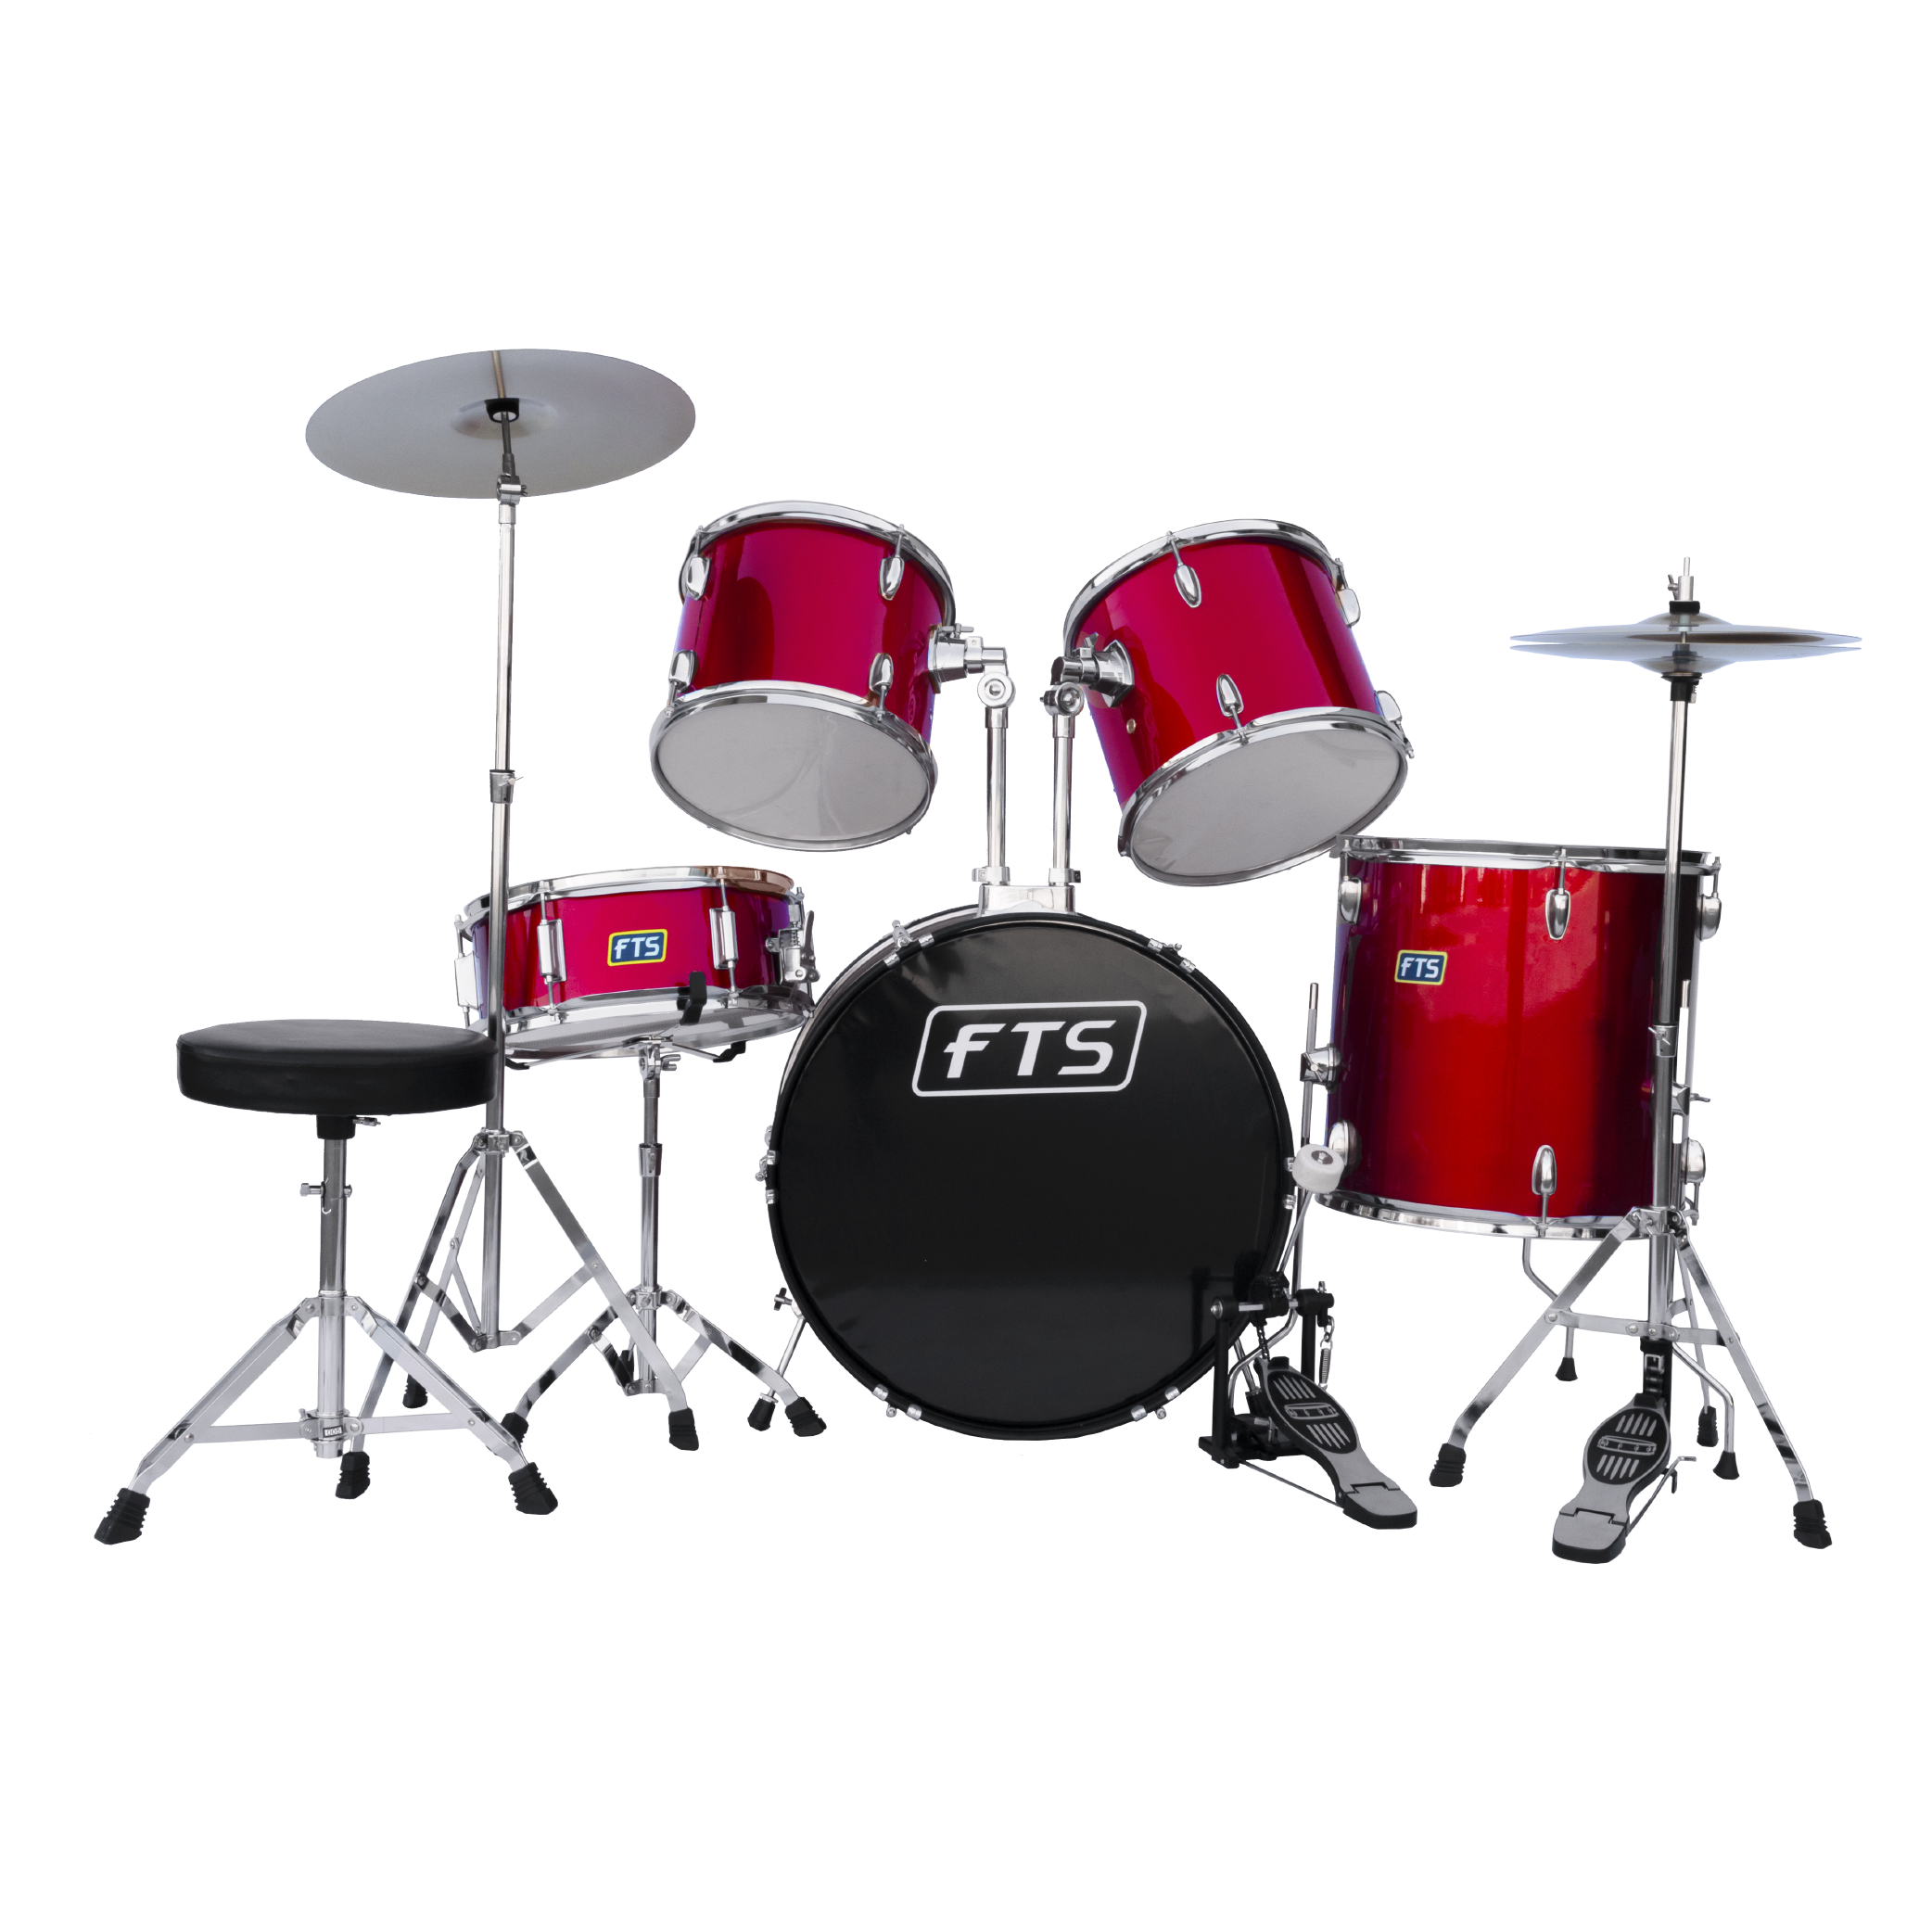 FTS 5 Piece Drum Set with Cymbals & Throne